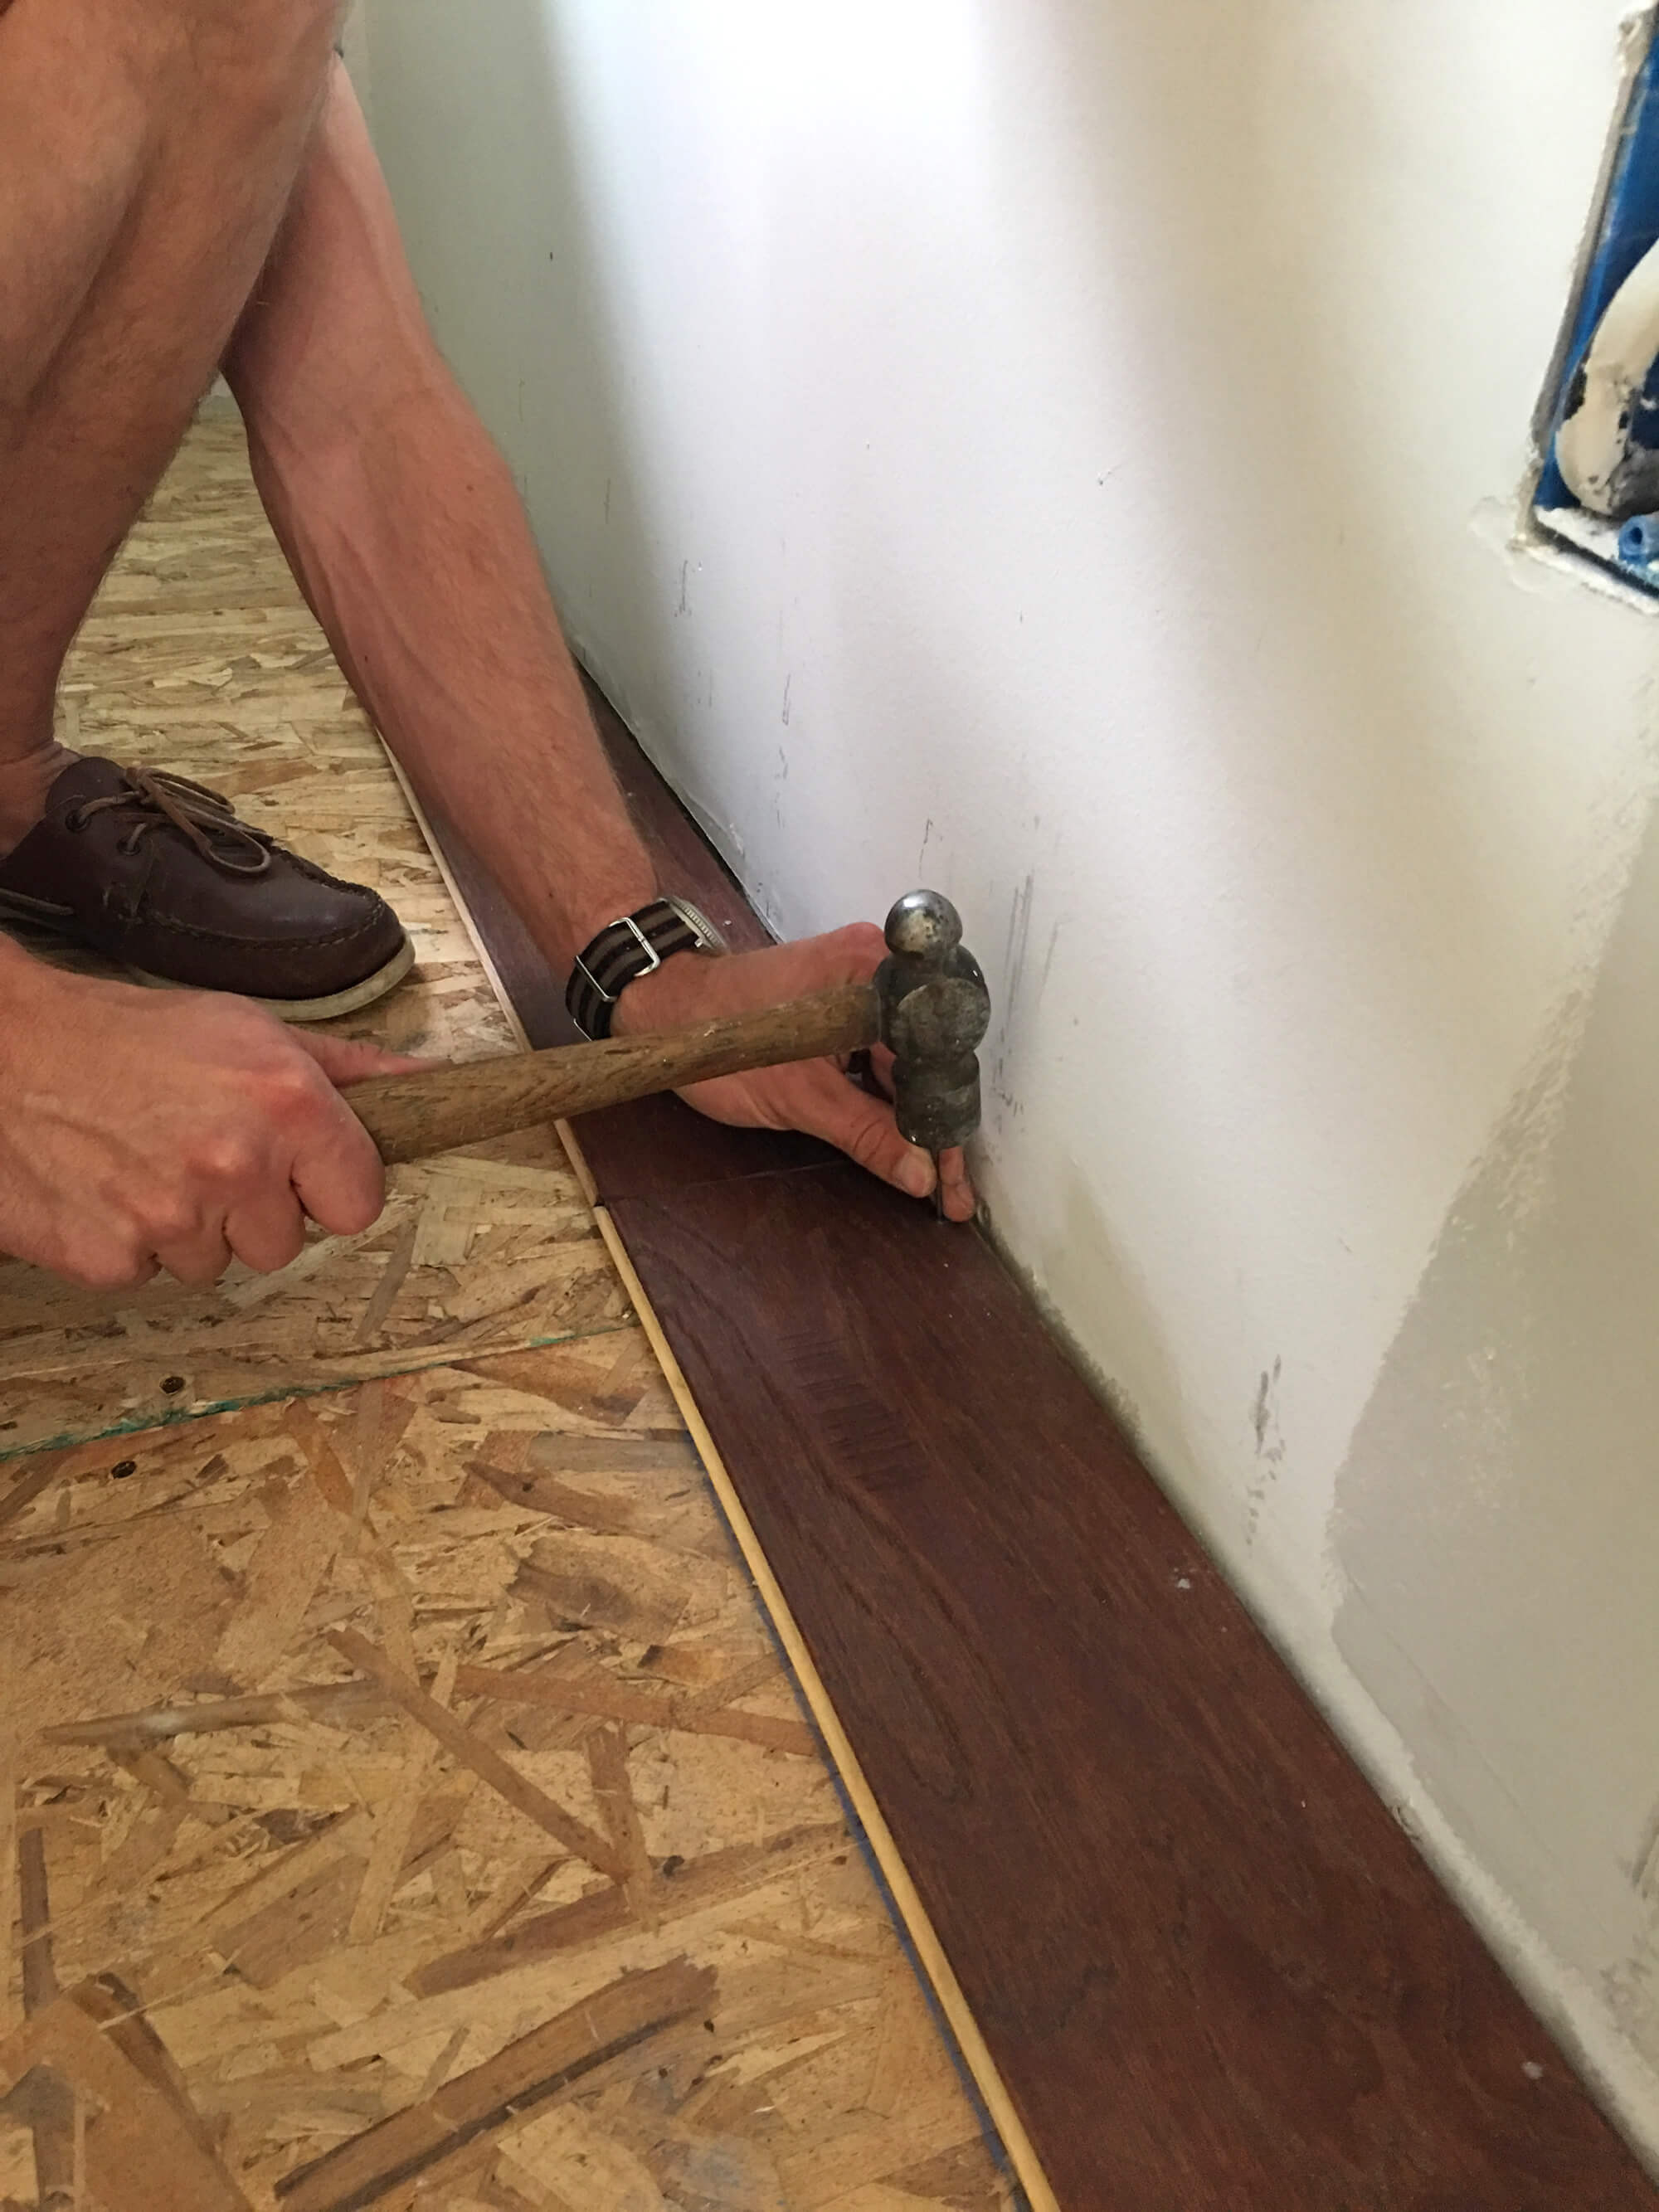 stanley hardwood floor nailer of the micro dwelling project part 5 flooring the daring gourmet intended for once the first row is installed the rest of the flooring can be secured using an air stapler you staple it every 4 6 inches along the floorboard and also